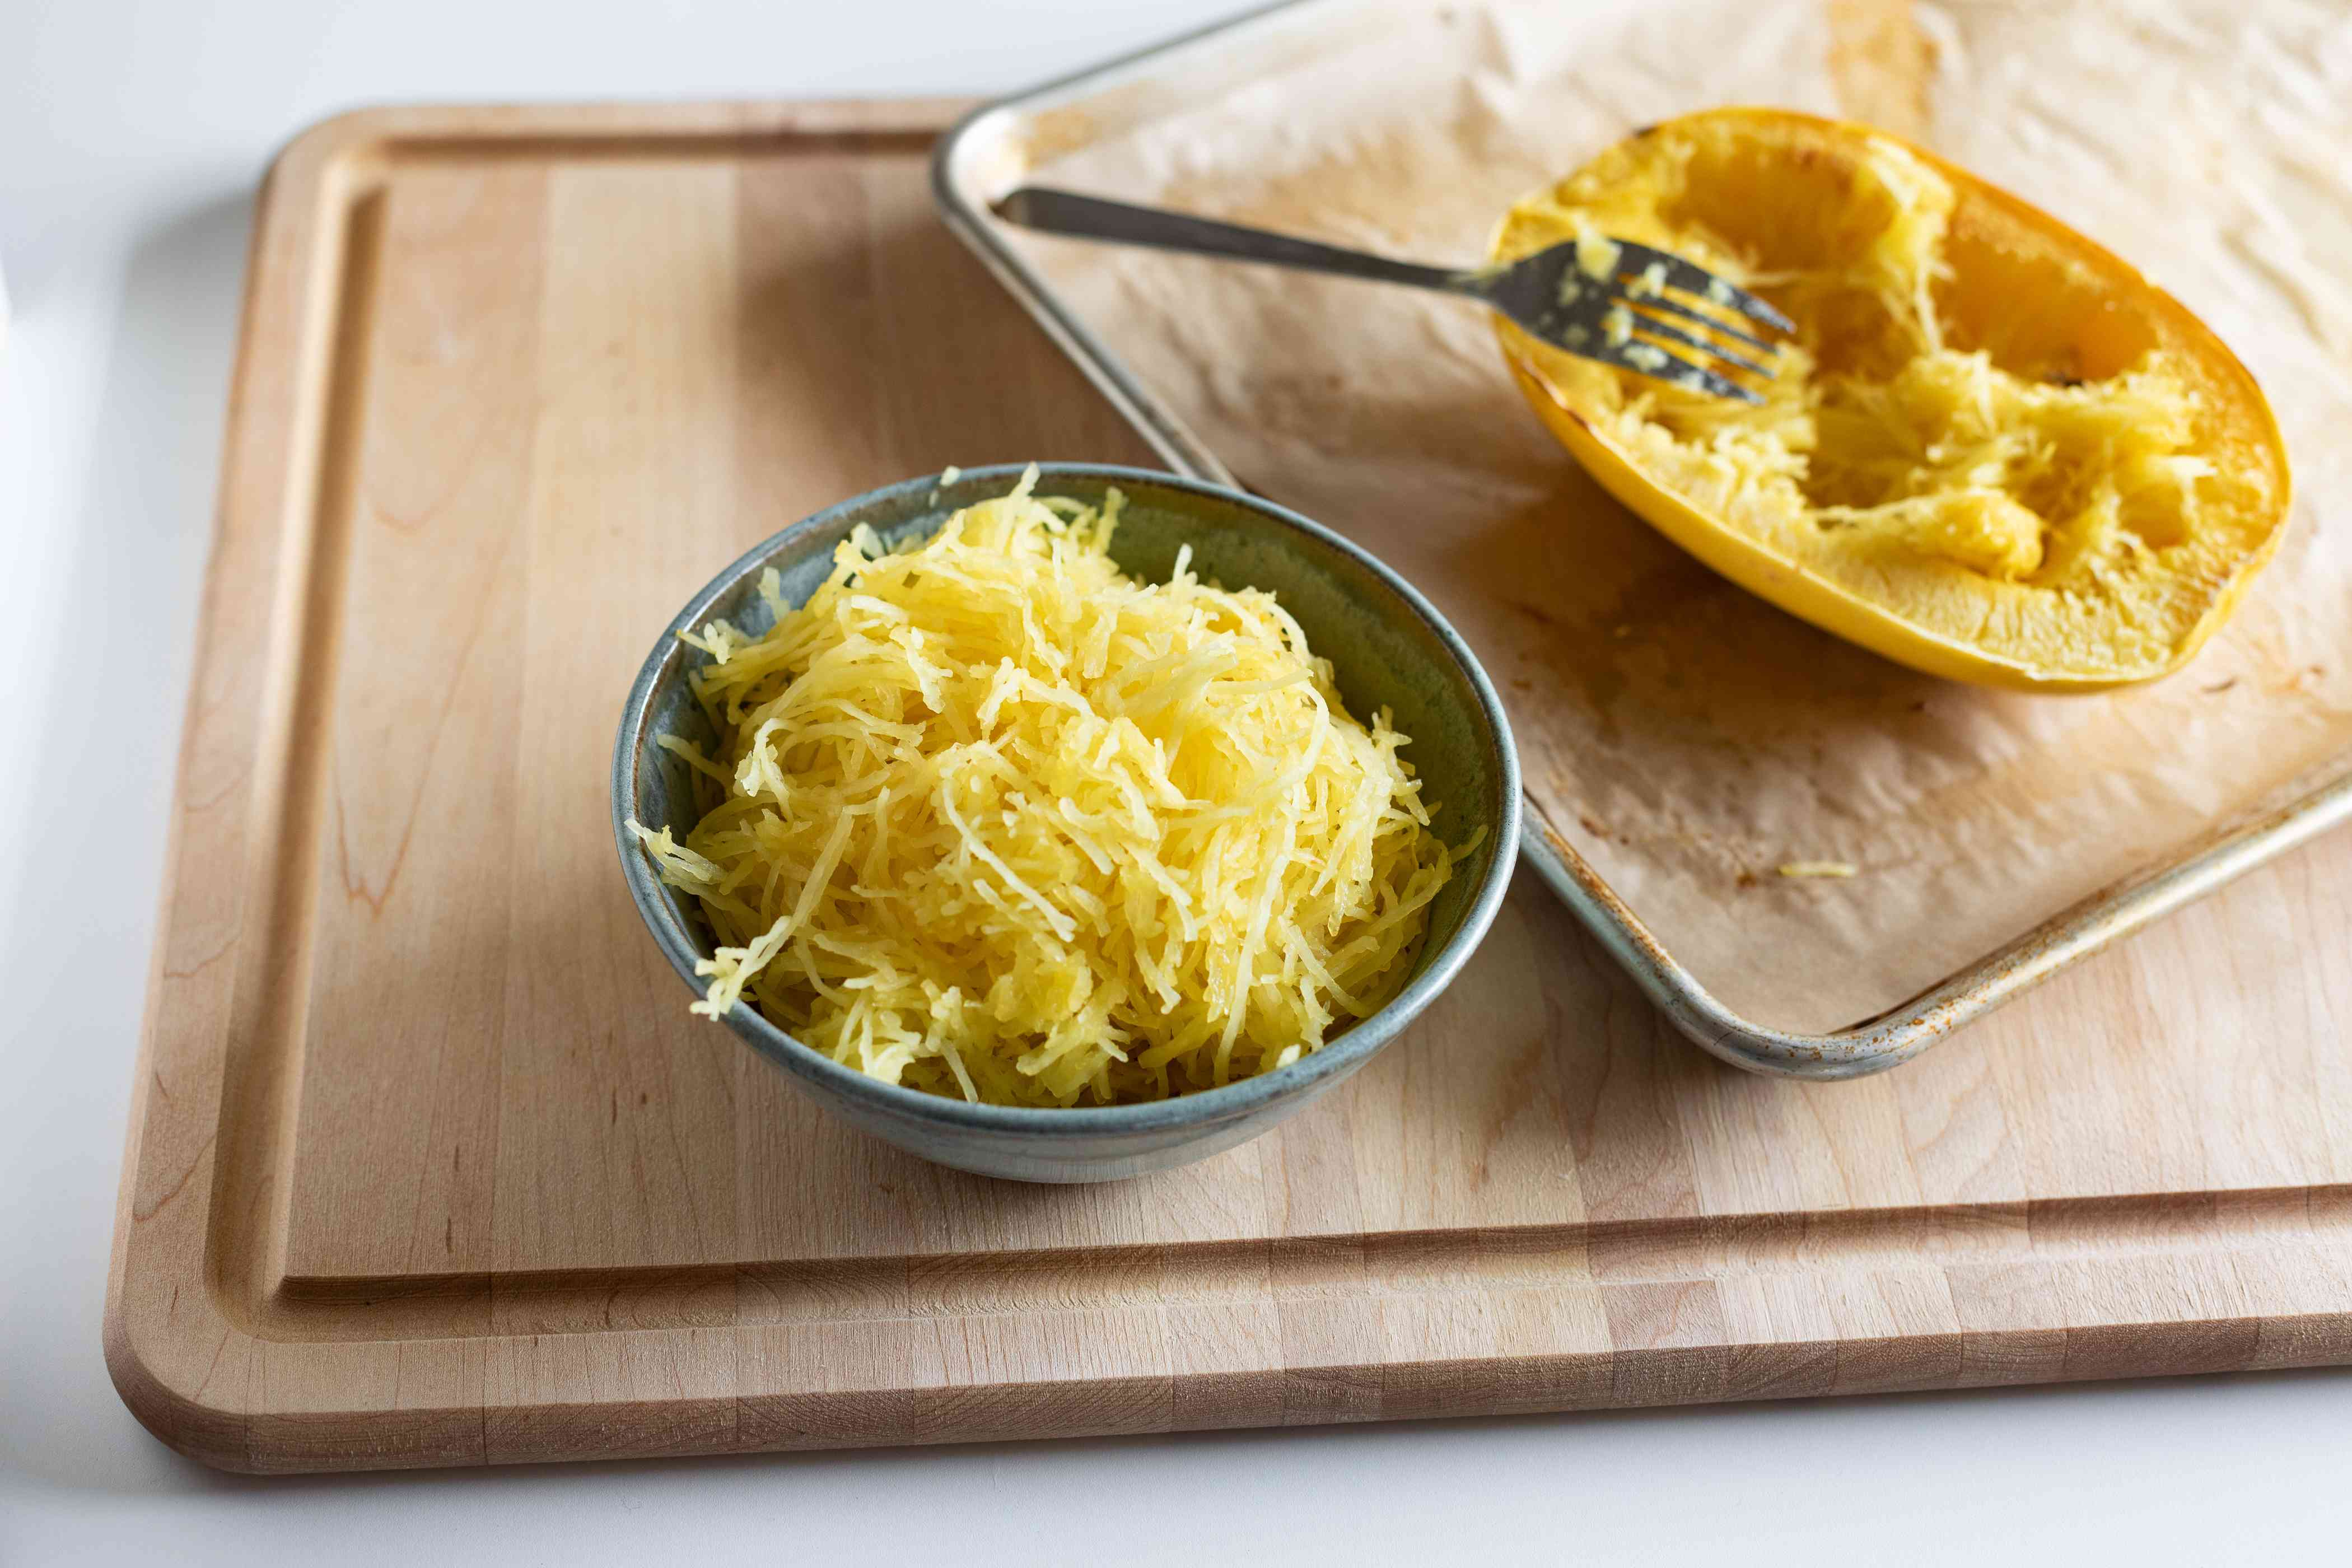 Roasted spaghetti squash in a bowl next to whole squash on sheet pan